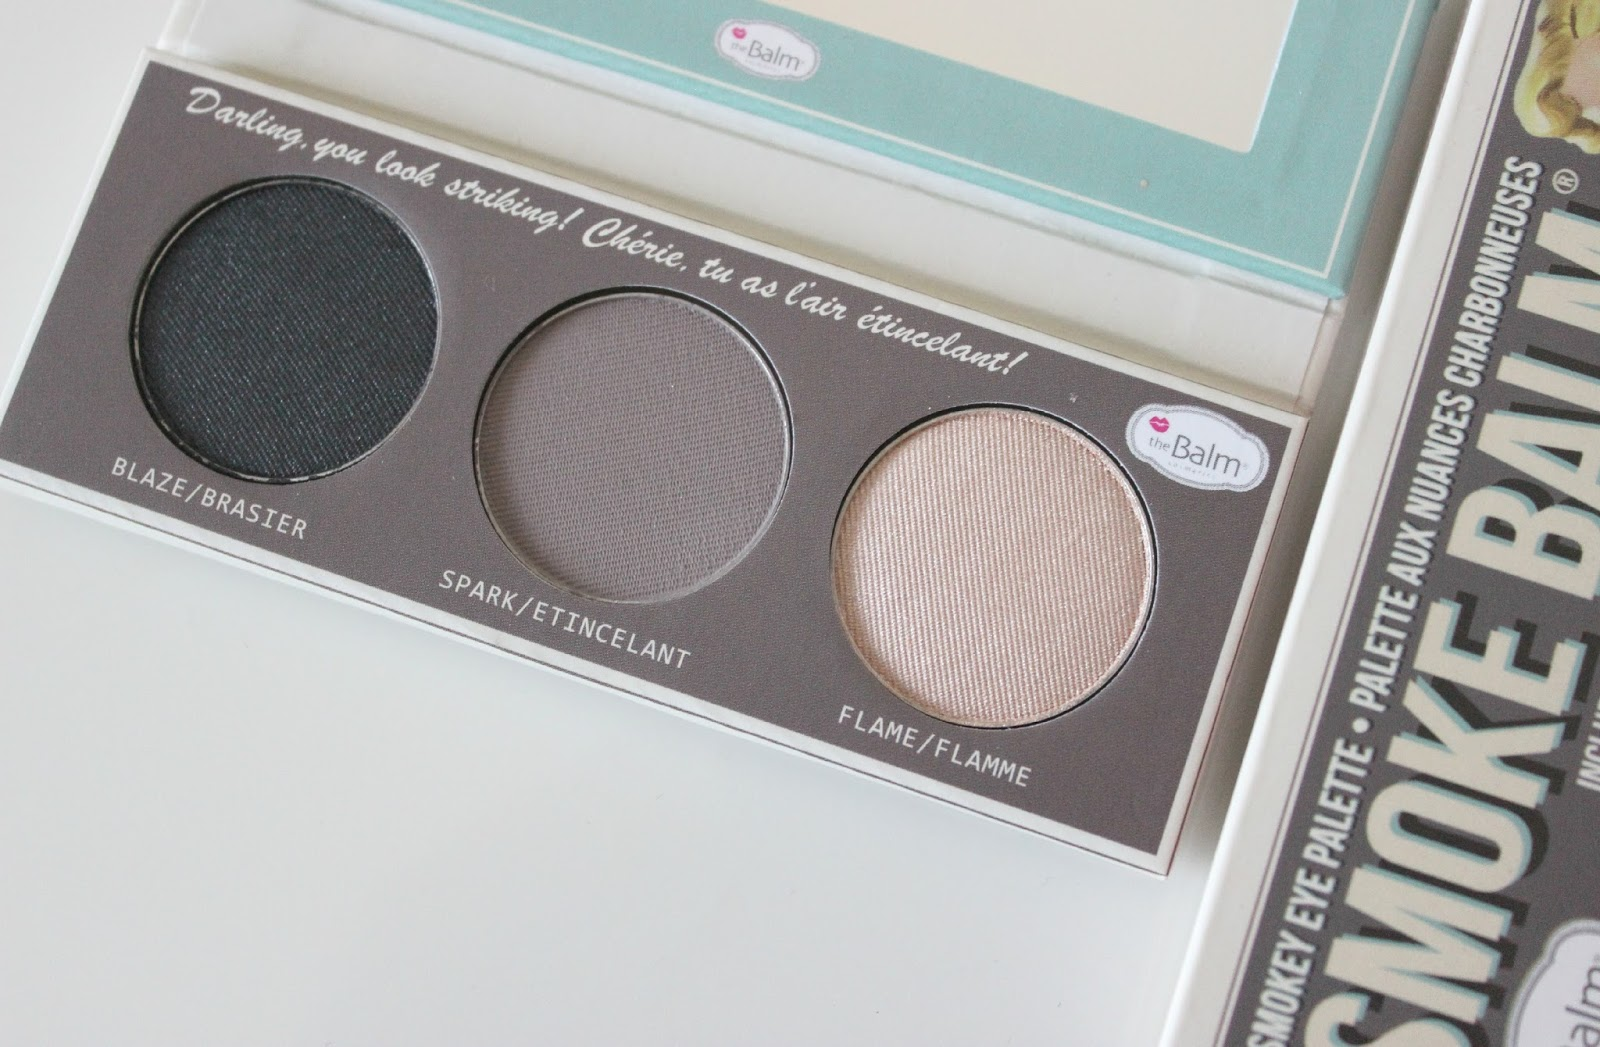 A picture of theBalm Smoke Balm eyeshadow palette